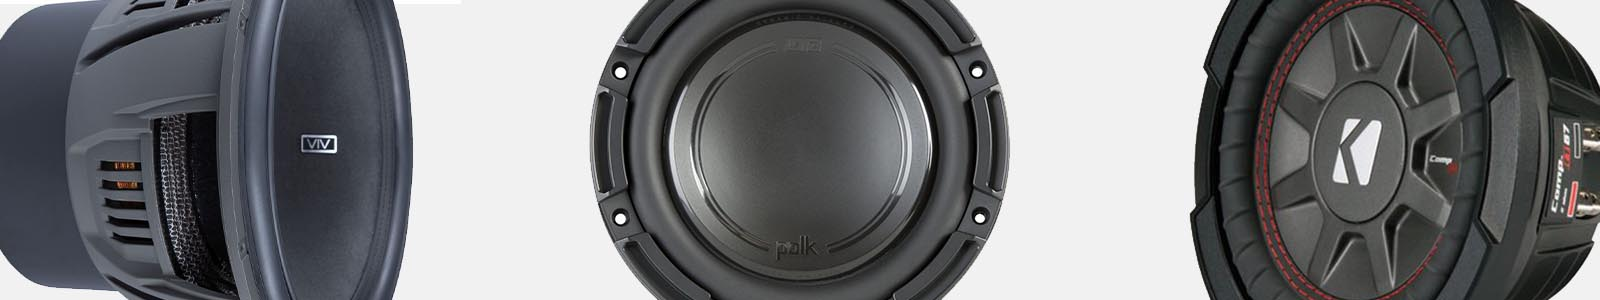 subwoofers-01-01-1.jpg